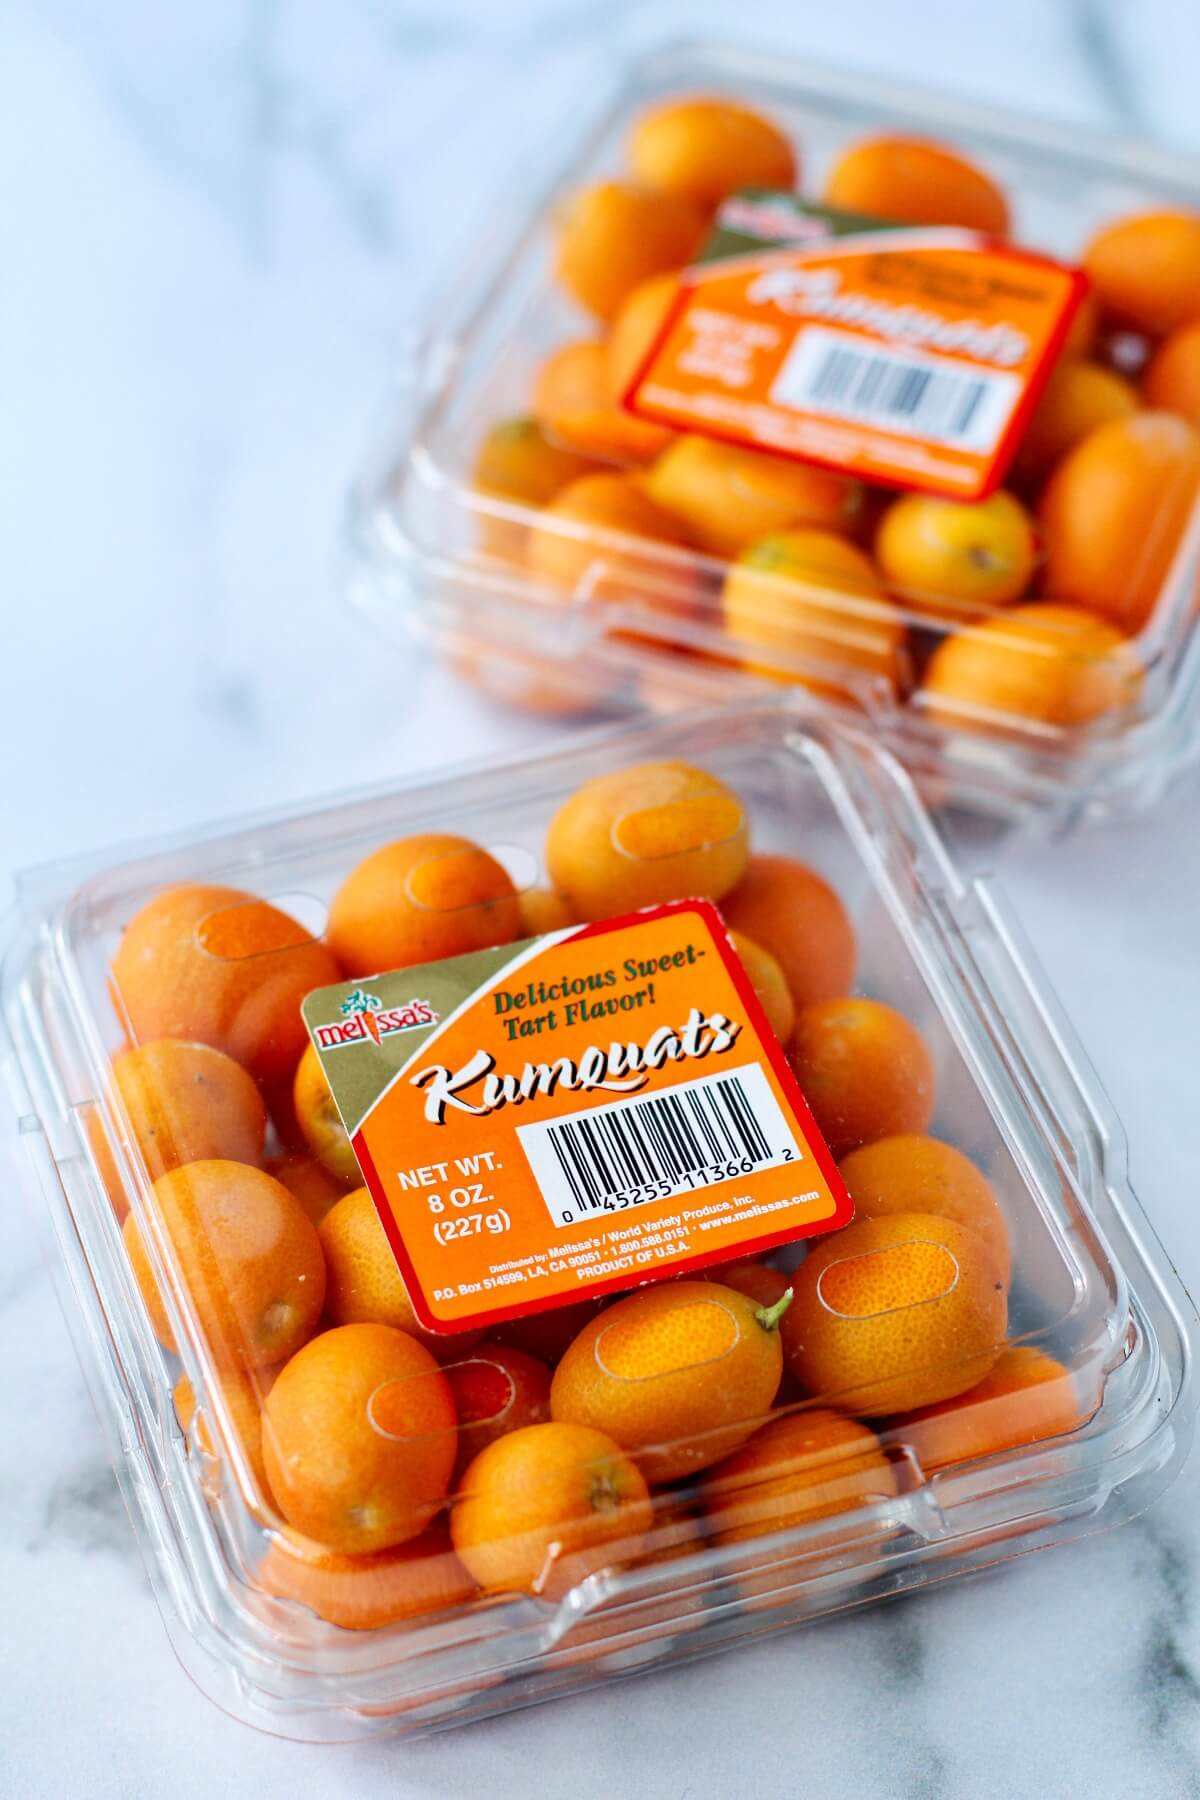 Kumquats in clamshells